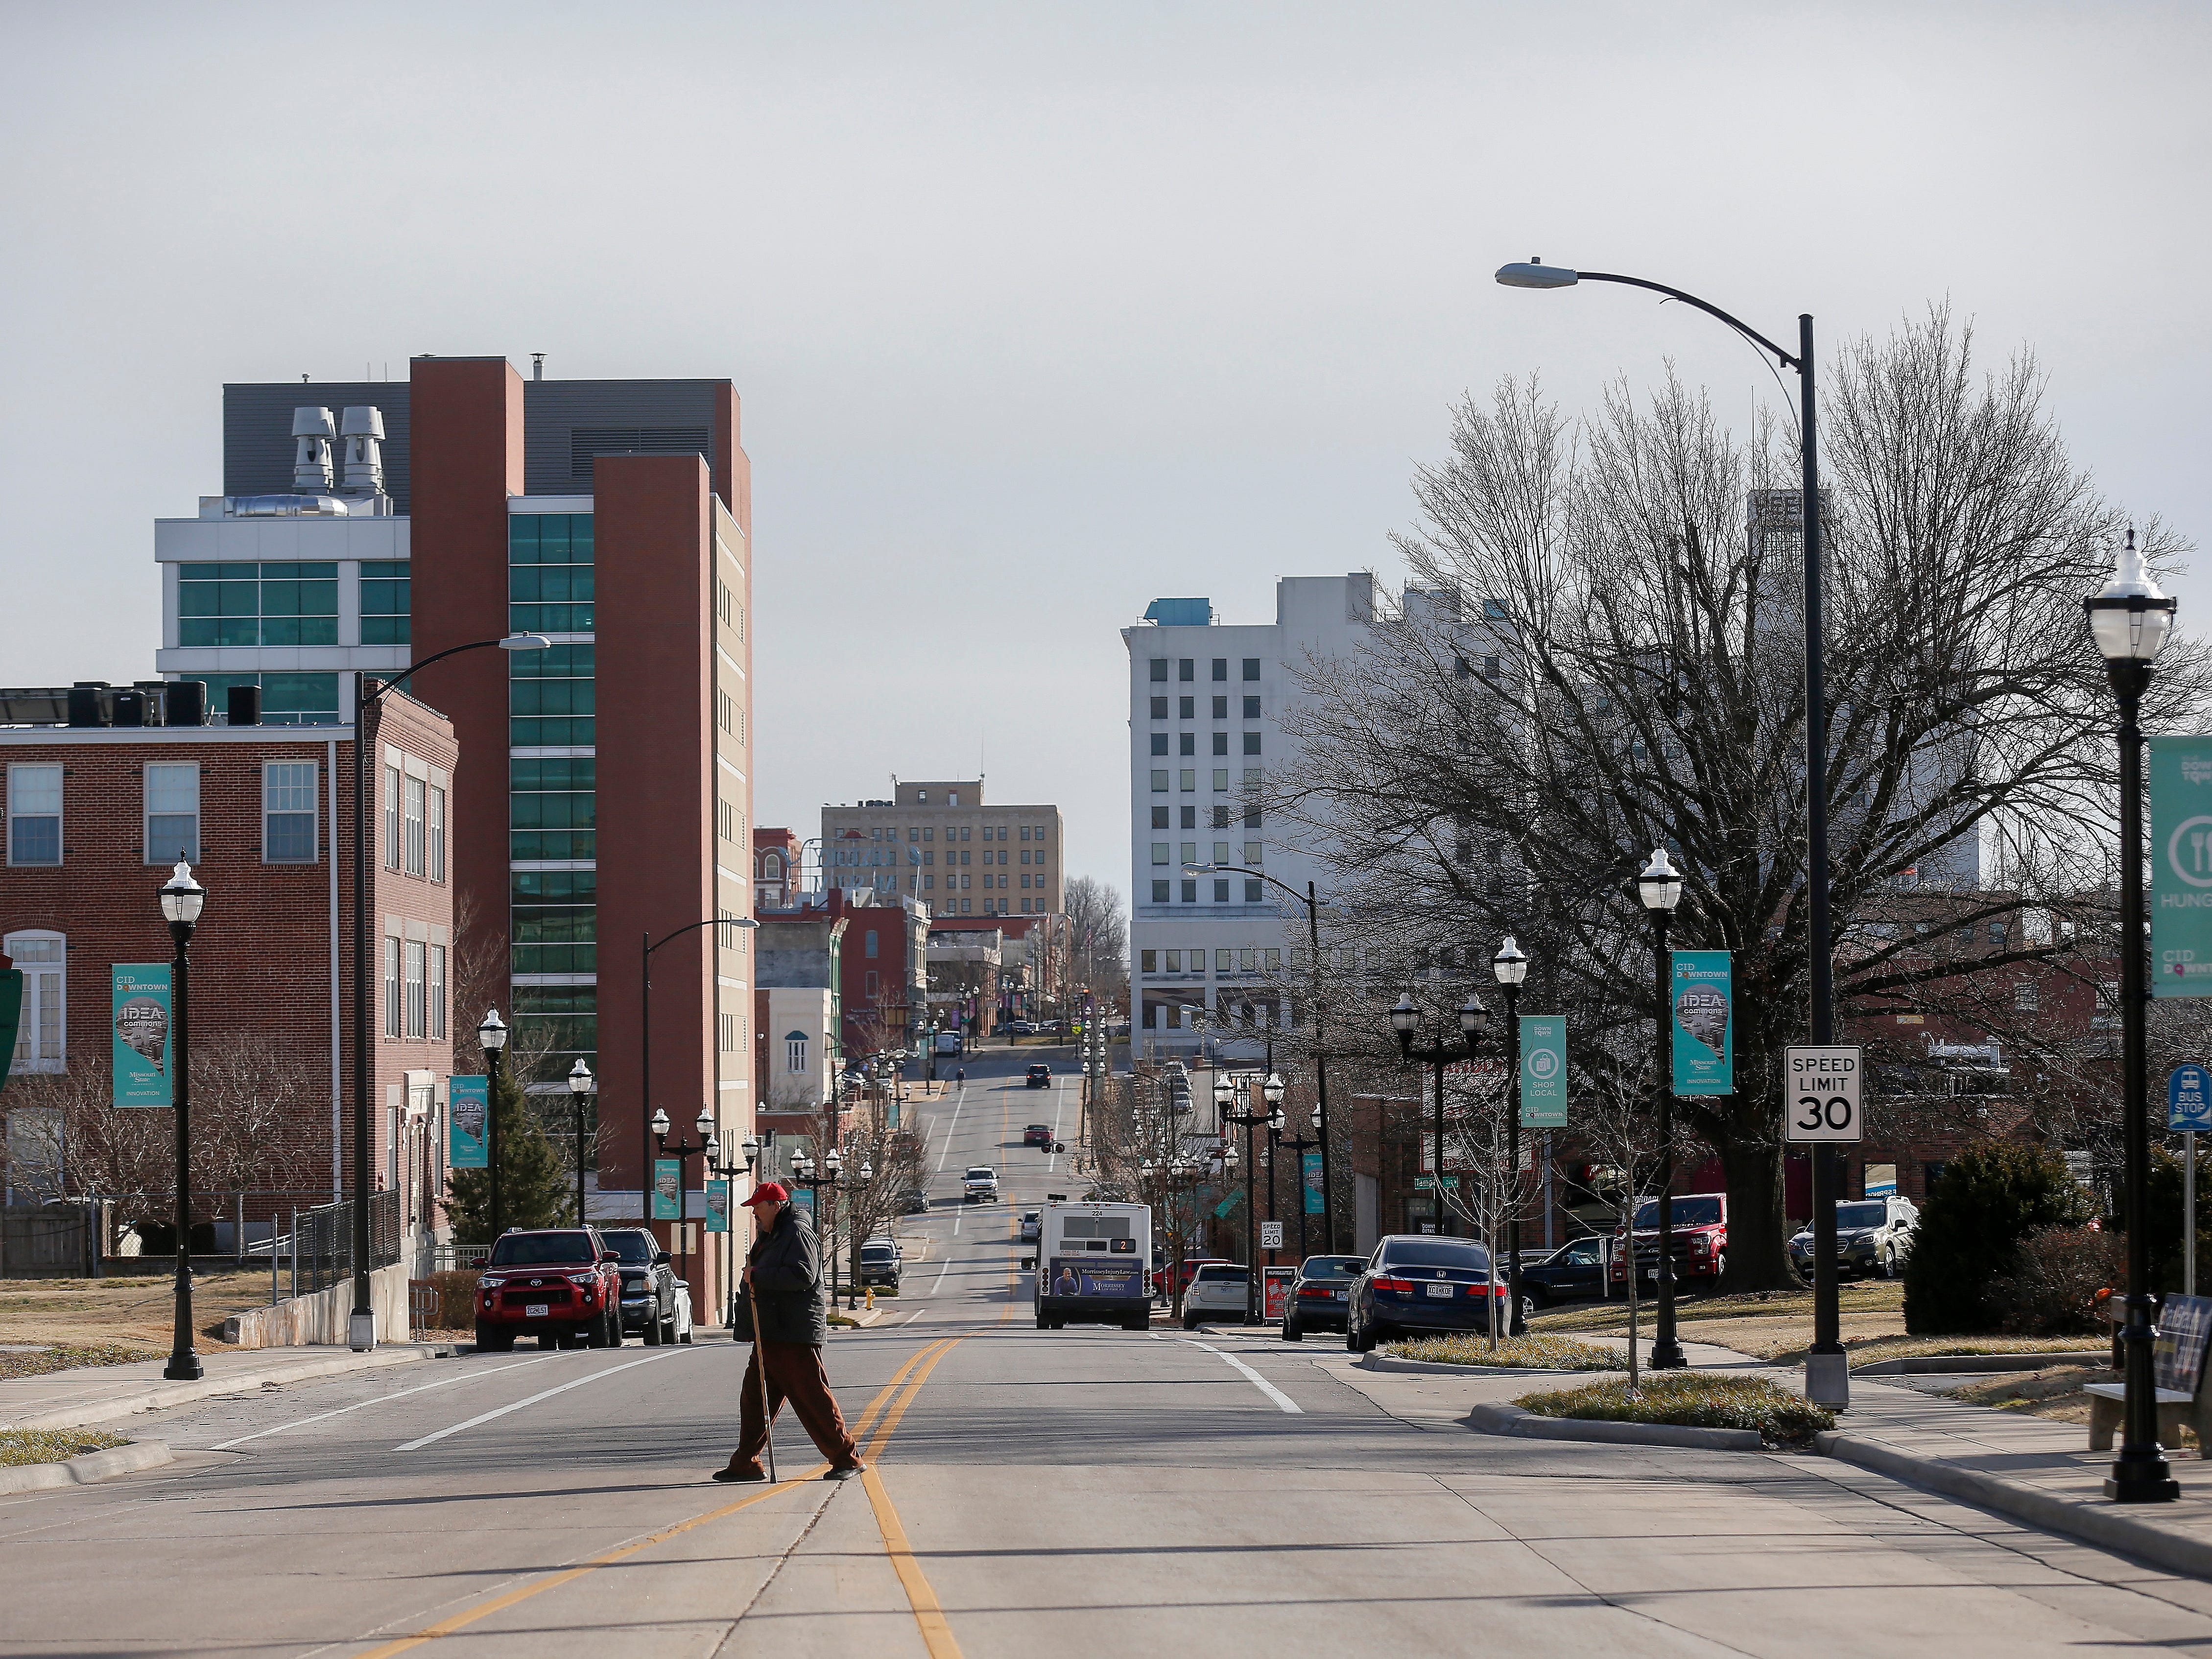 A view down Boonville Avenue toward Park Central Square on Thursday, Feb. 14, 2019. Temperatures were in the low 60s on Thursday.